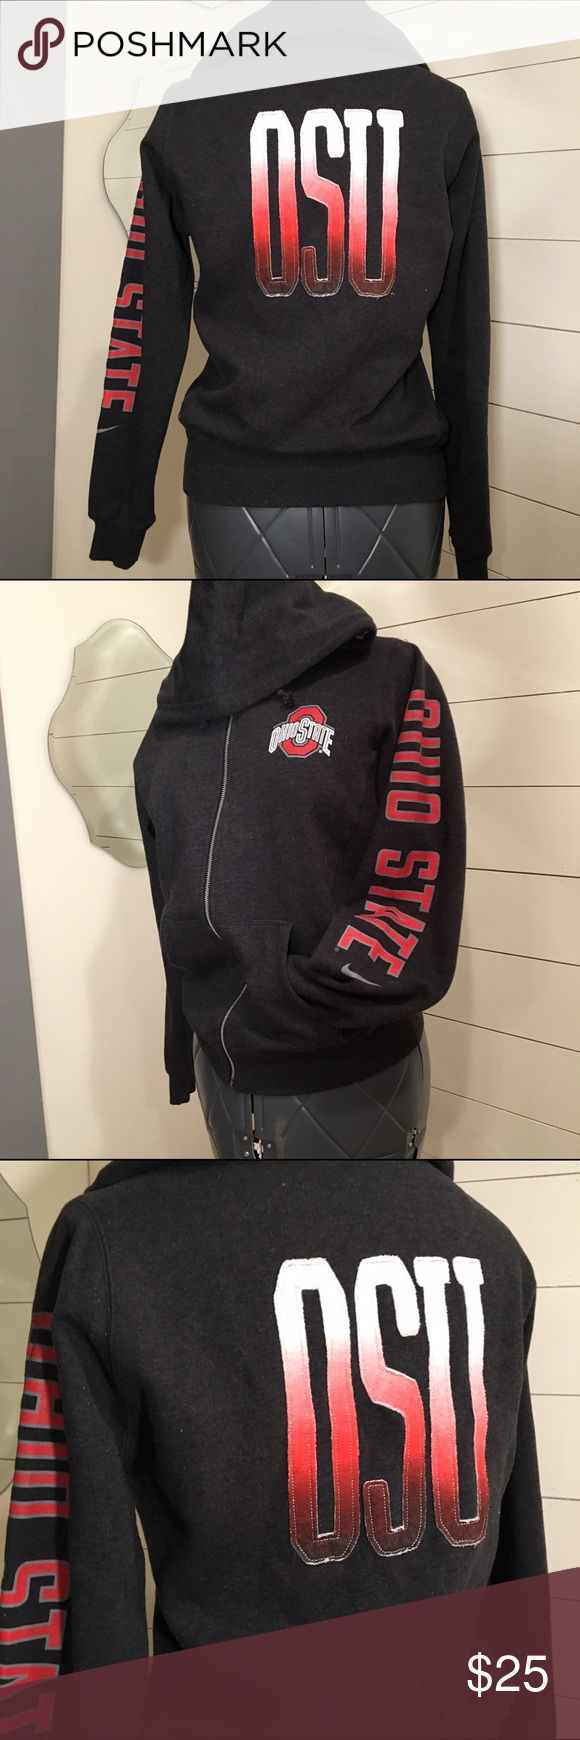 Ohio State Buckeyes Nike Zip Up Jacket Ombré NWOT Women's Nike Ohio State Zip Up Jacket  Ohio State on the sleeve OSU on the back with ombré coloring and metallic stitching  Never worn! Sweatshirt material, soft and comfy fabric Size: Large  Measurements: 20.5 pit to pit, 16 hip, 24.5 sleeve Nike Tops Sweatshirts & Hoodies